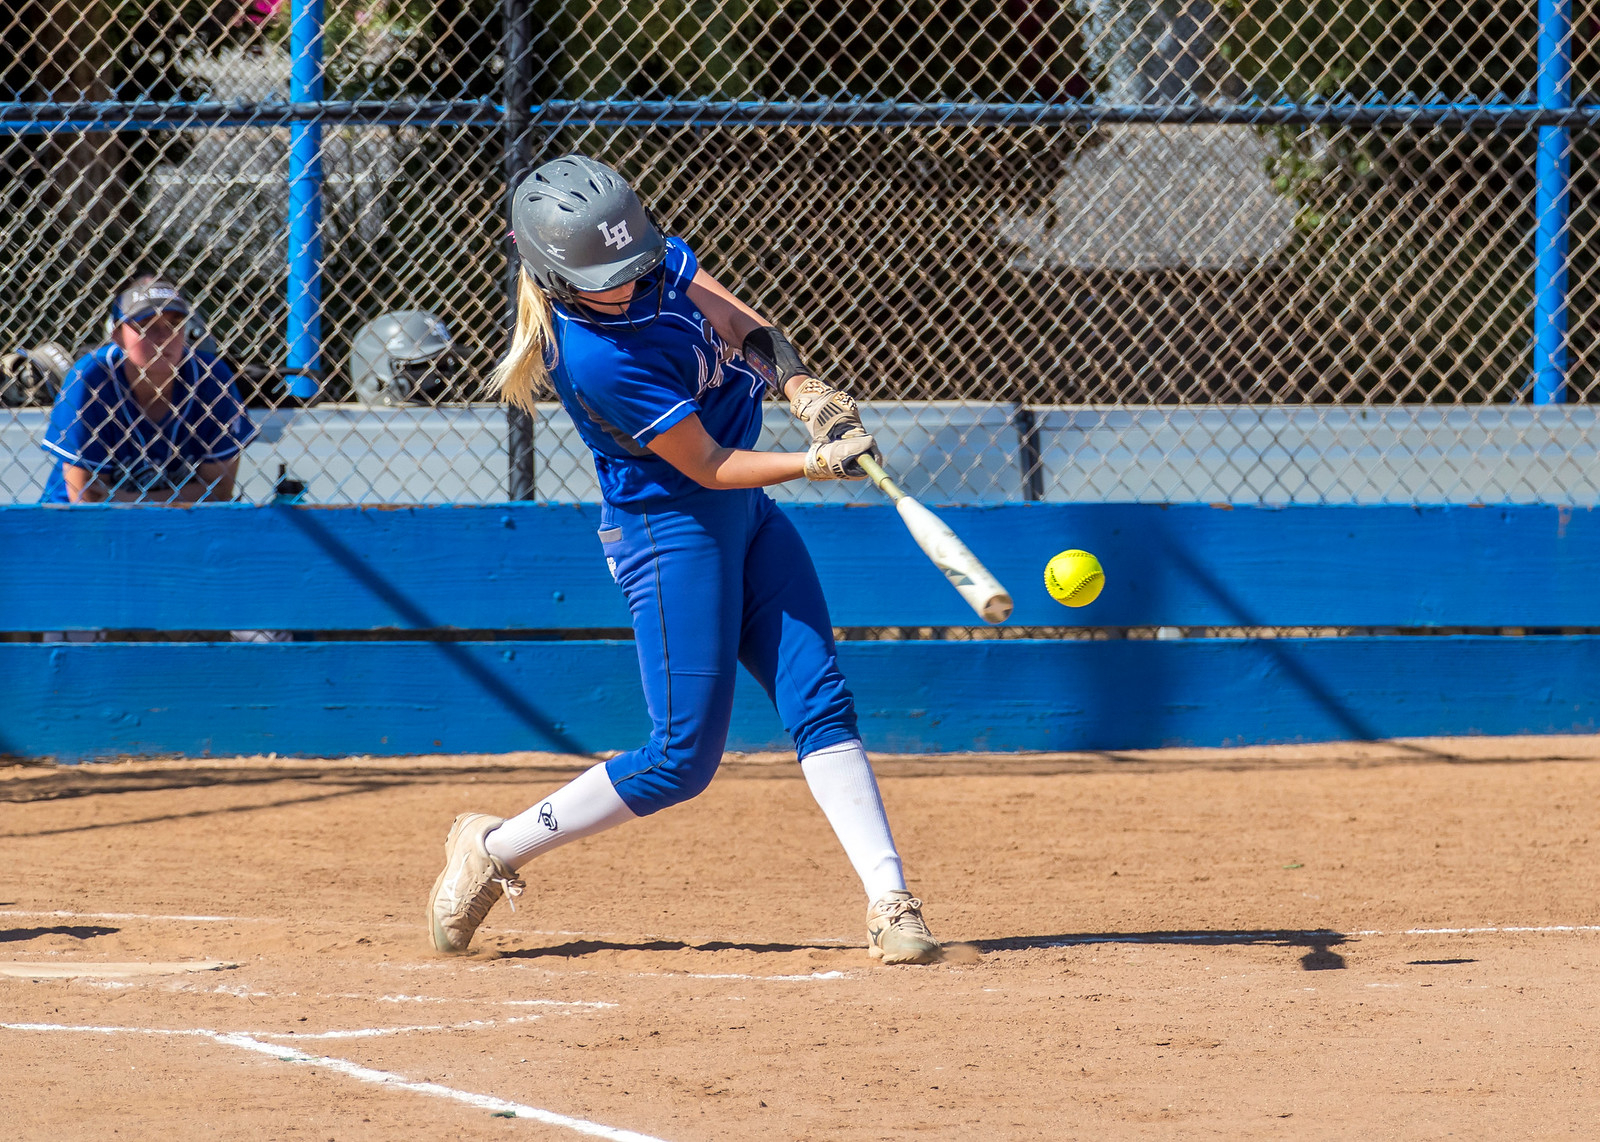 Softball: California @ La Habra (2/18/20)